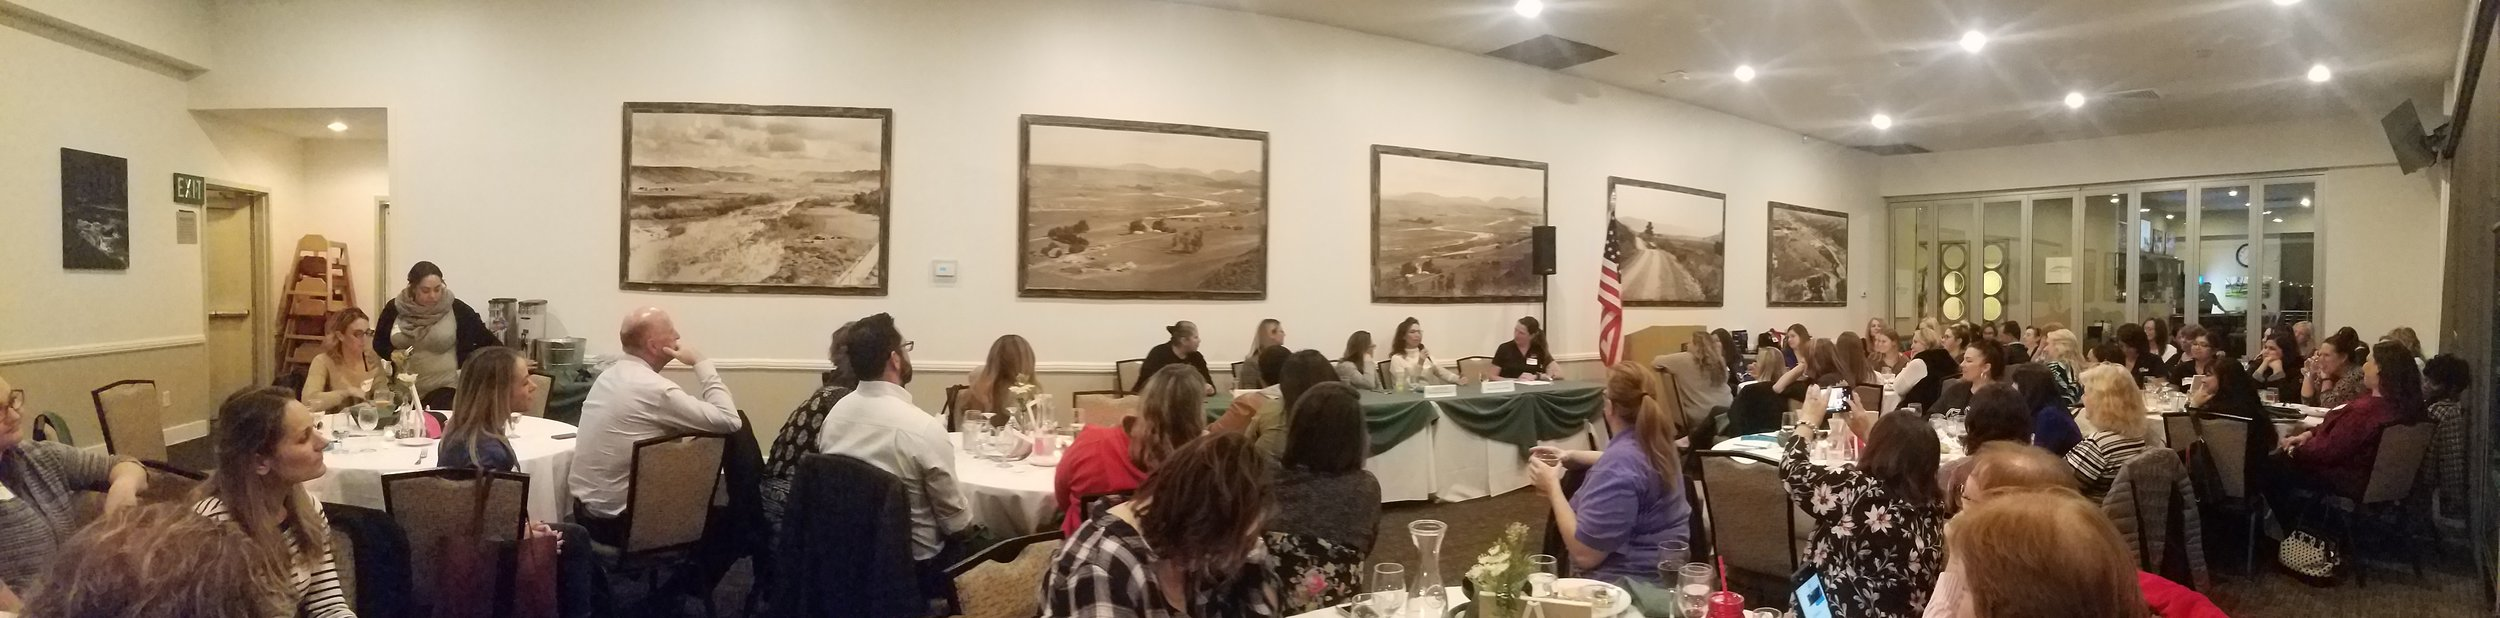 Large banquet room full of women and a few men at tables.